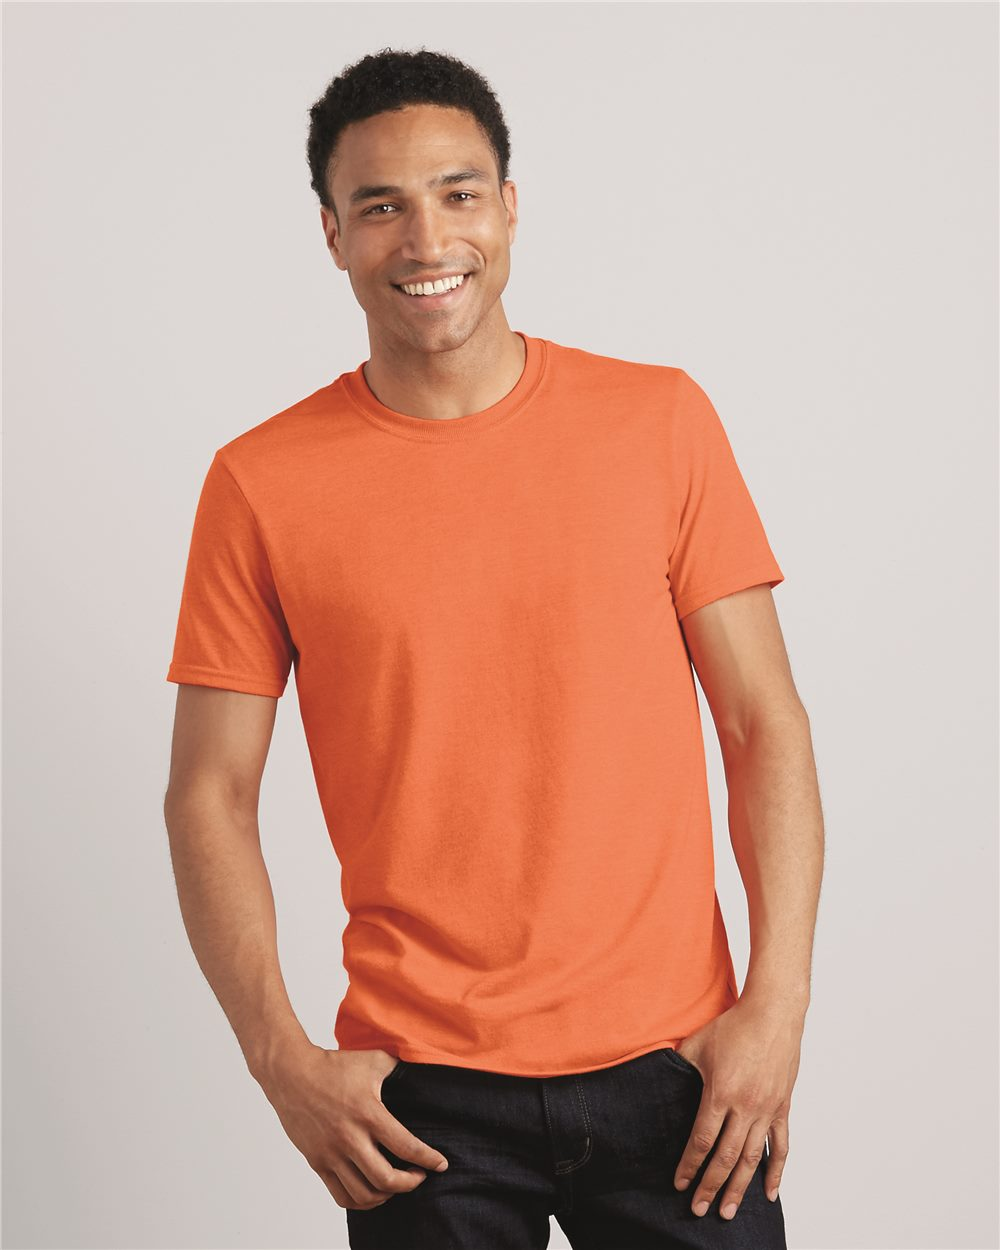 Gildan Softstyle T-shirt - 64000                      Starting at $3.50 - Blank -13 Colors